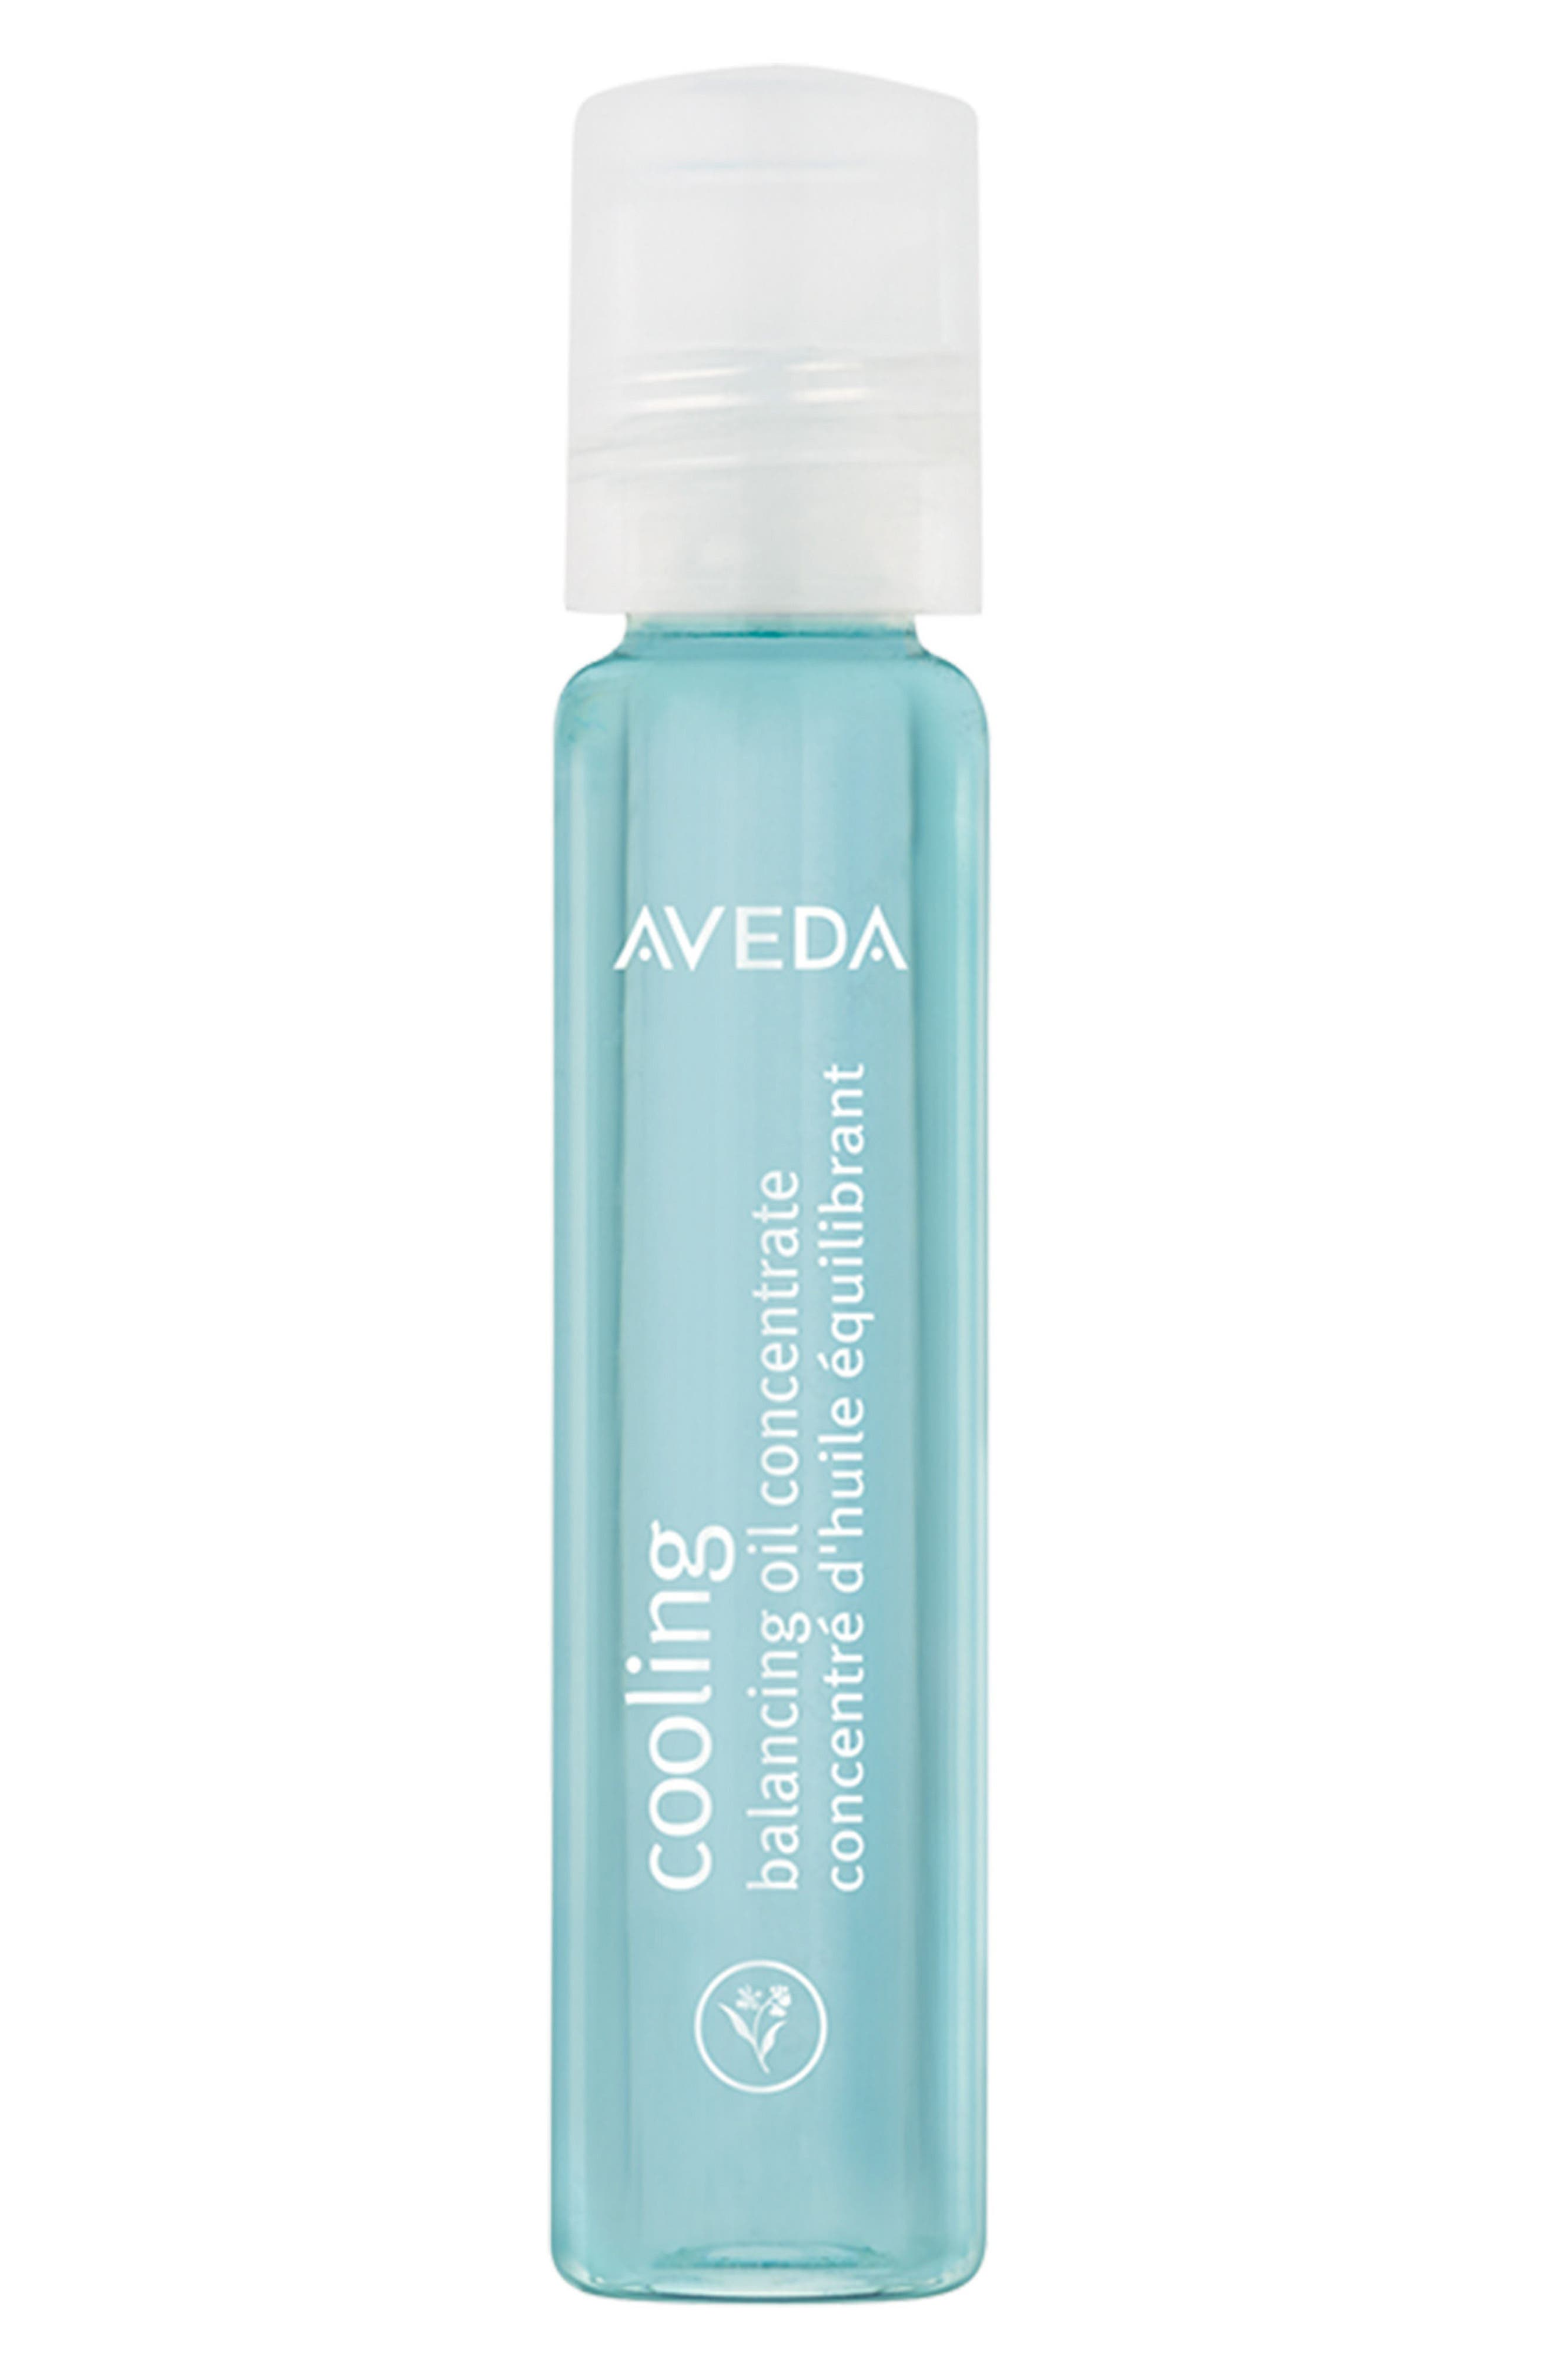 Aveda Cooling Balancing Oil Concentrate Rollerball